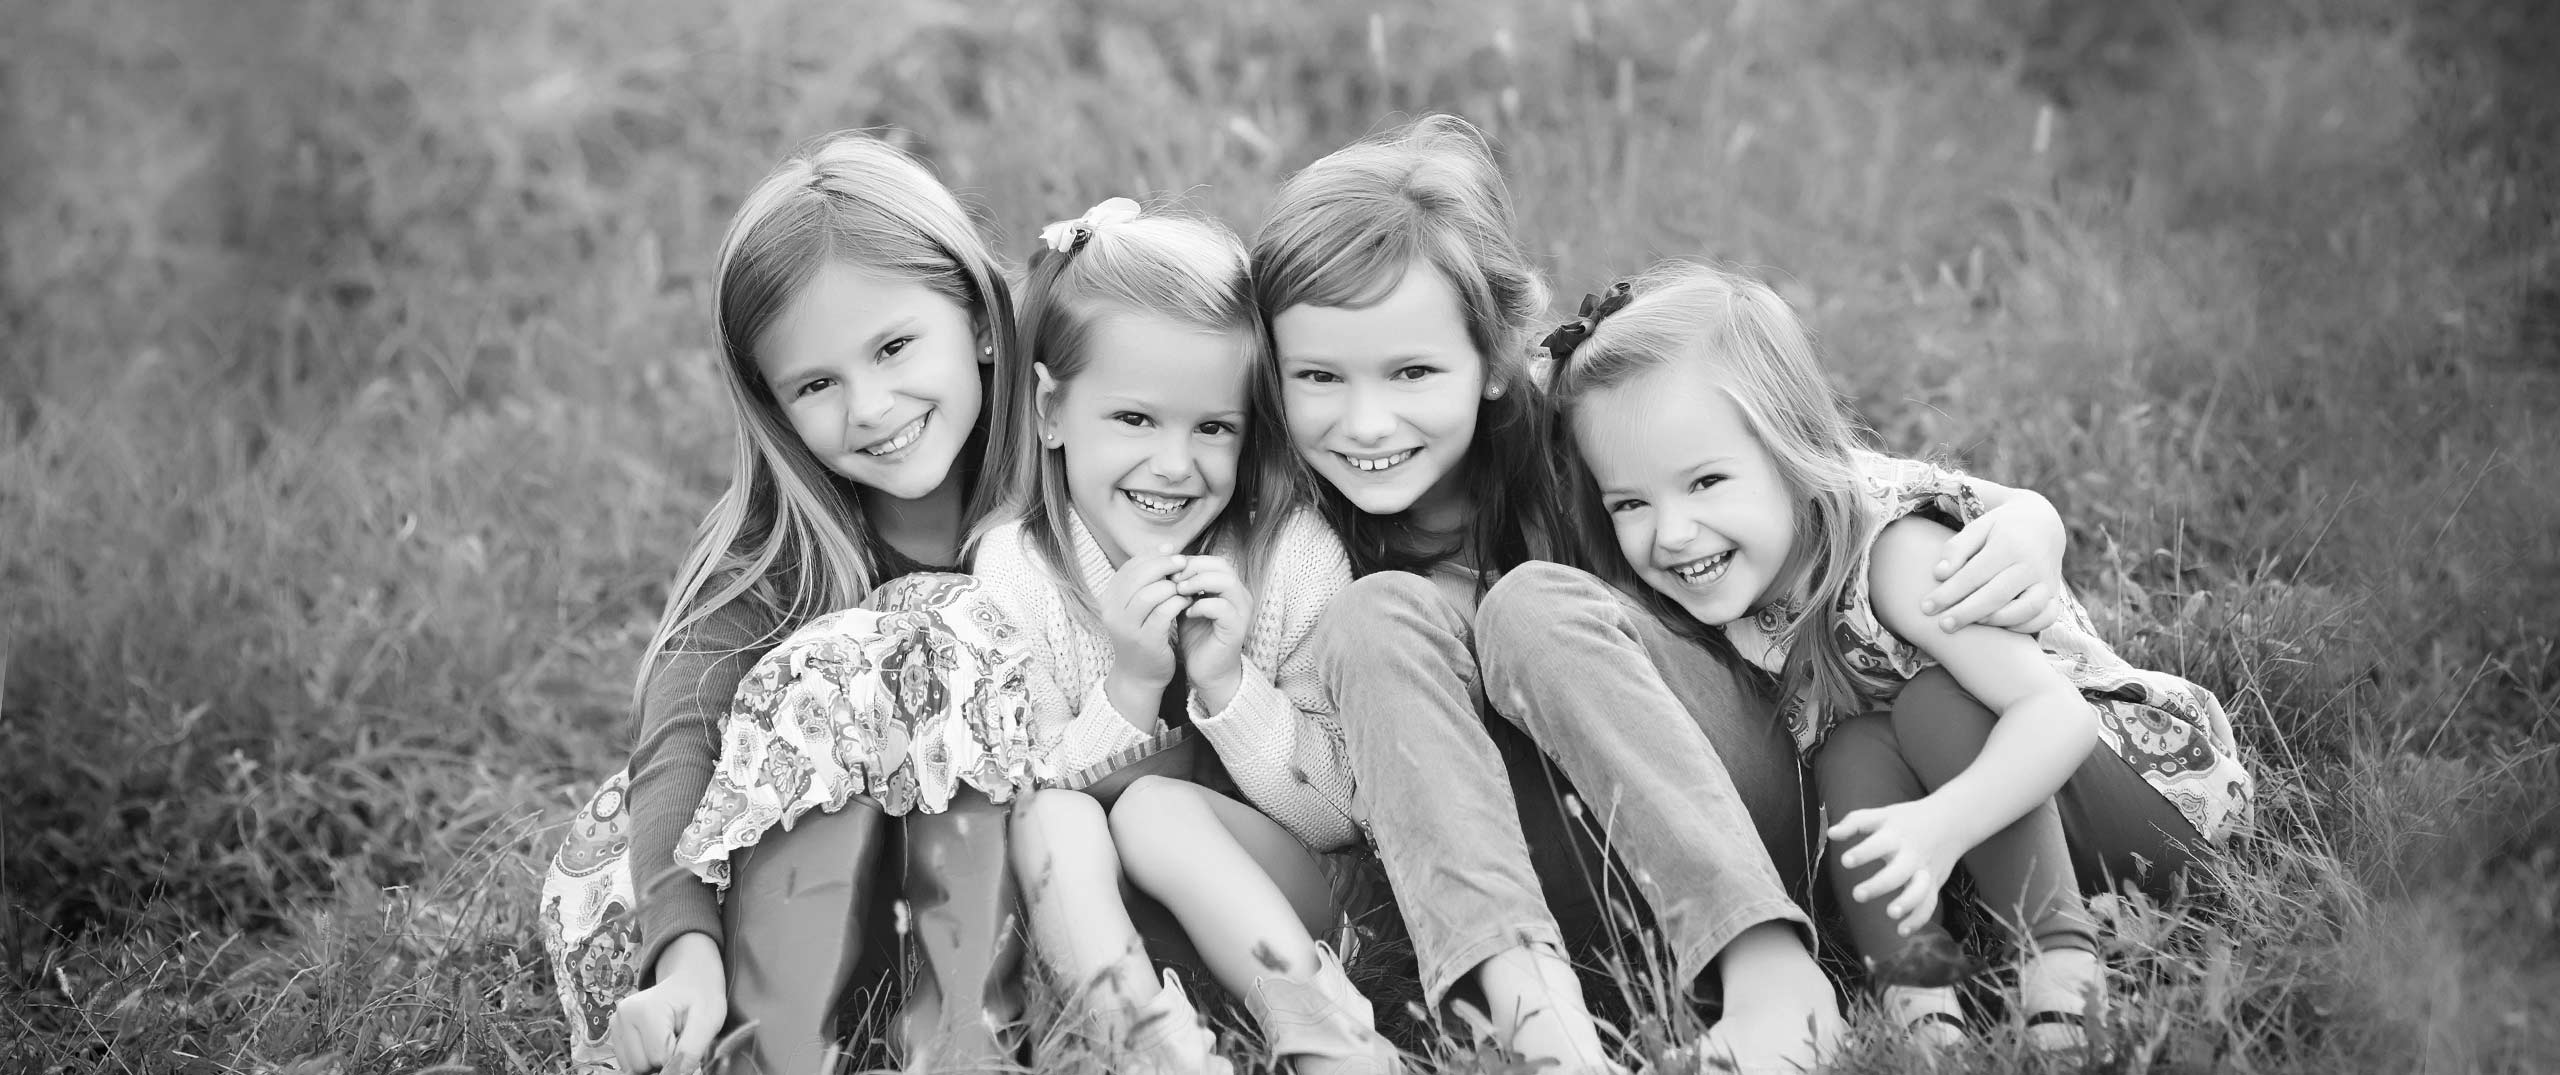 outdoor family photography session four sisters smiling lincoln ne